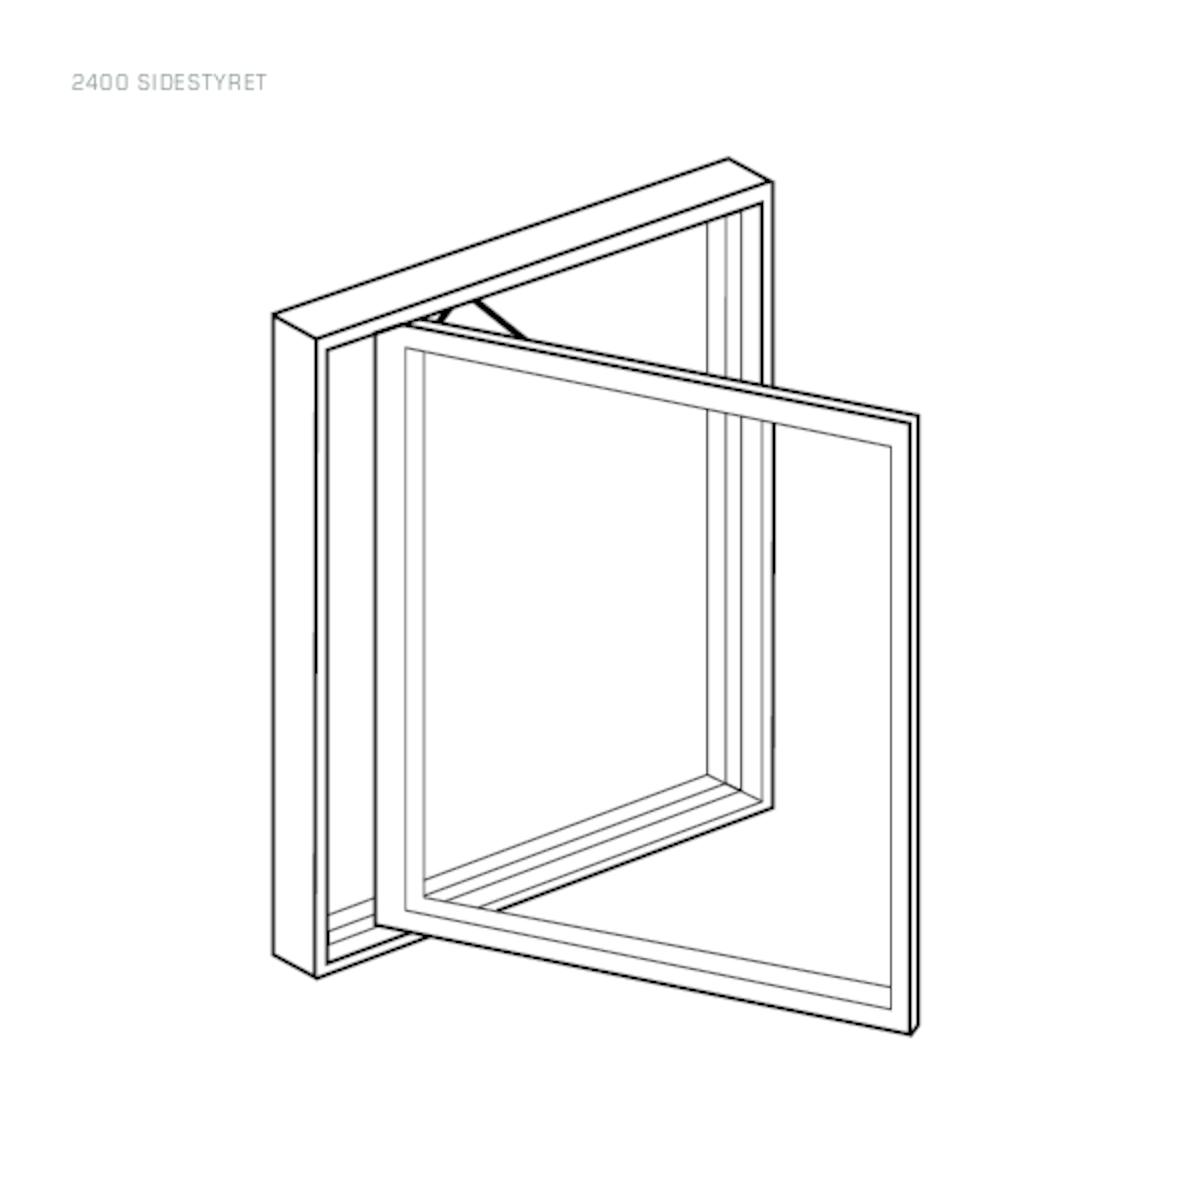 Rationel Side Guided window drawing